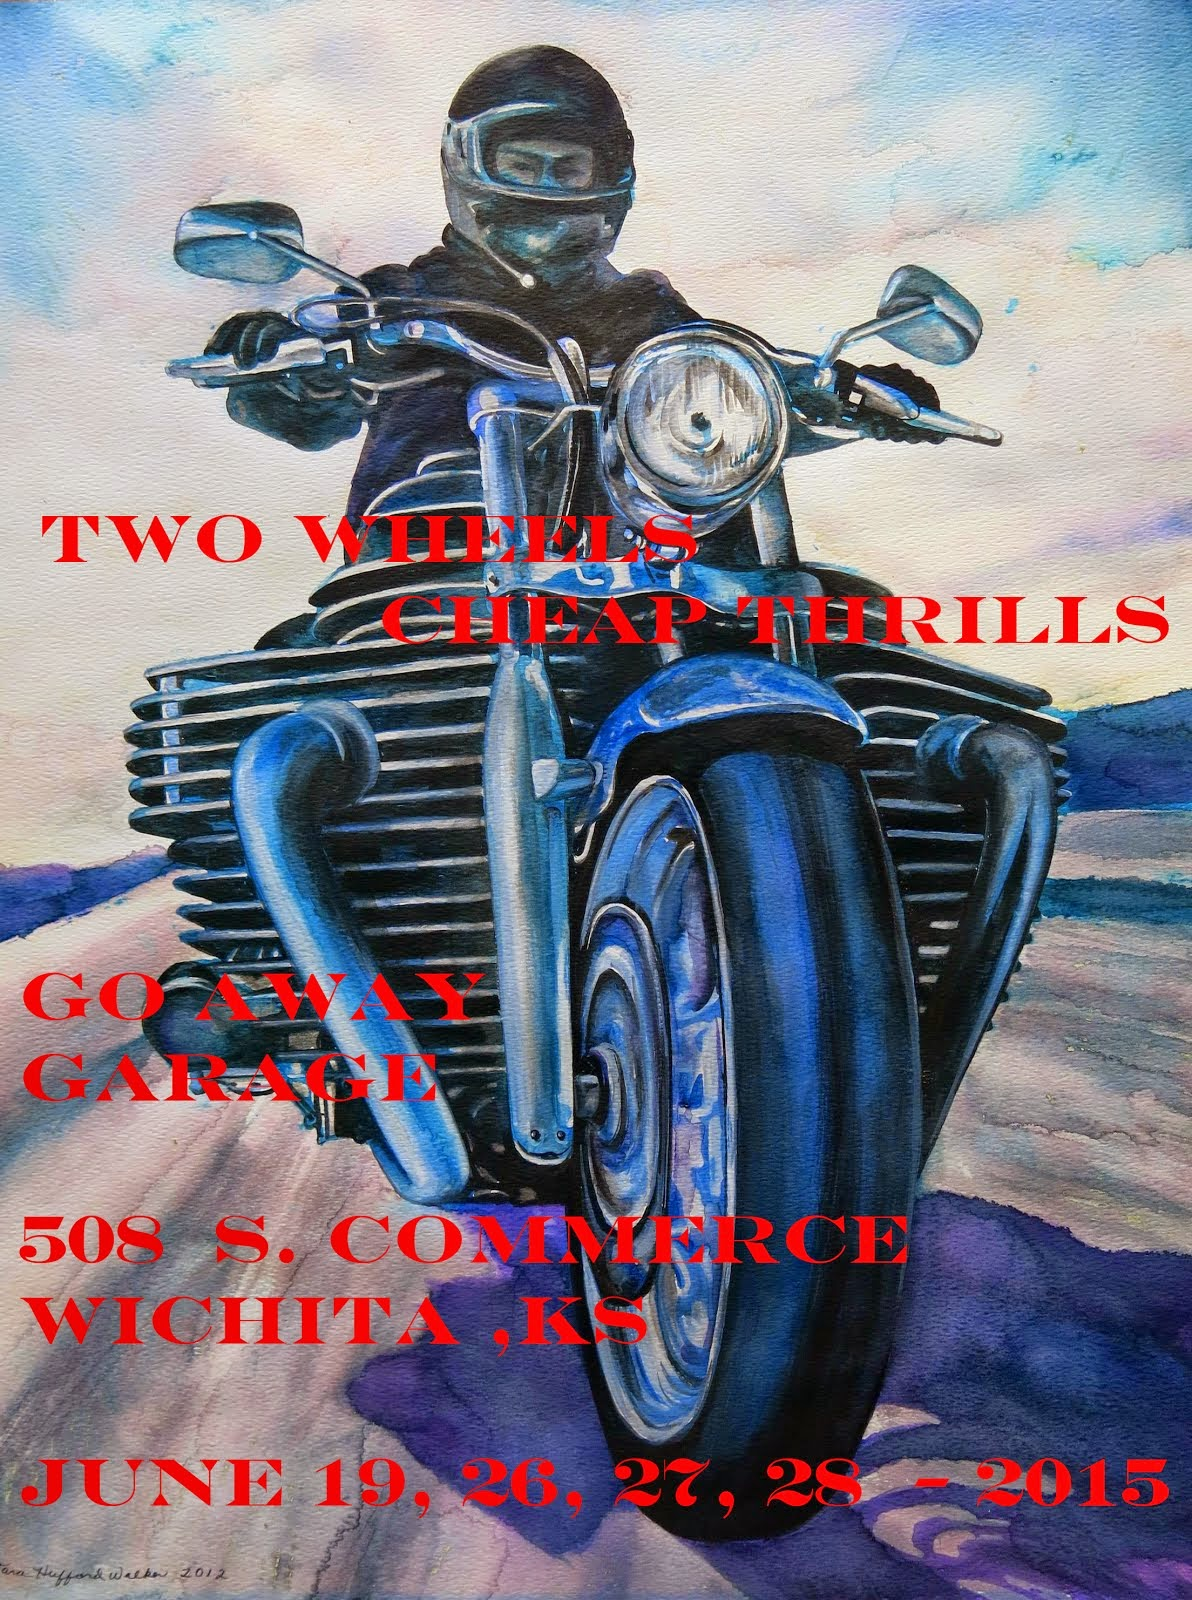 TWO WHEELS-CHEAP THRILLS